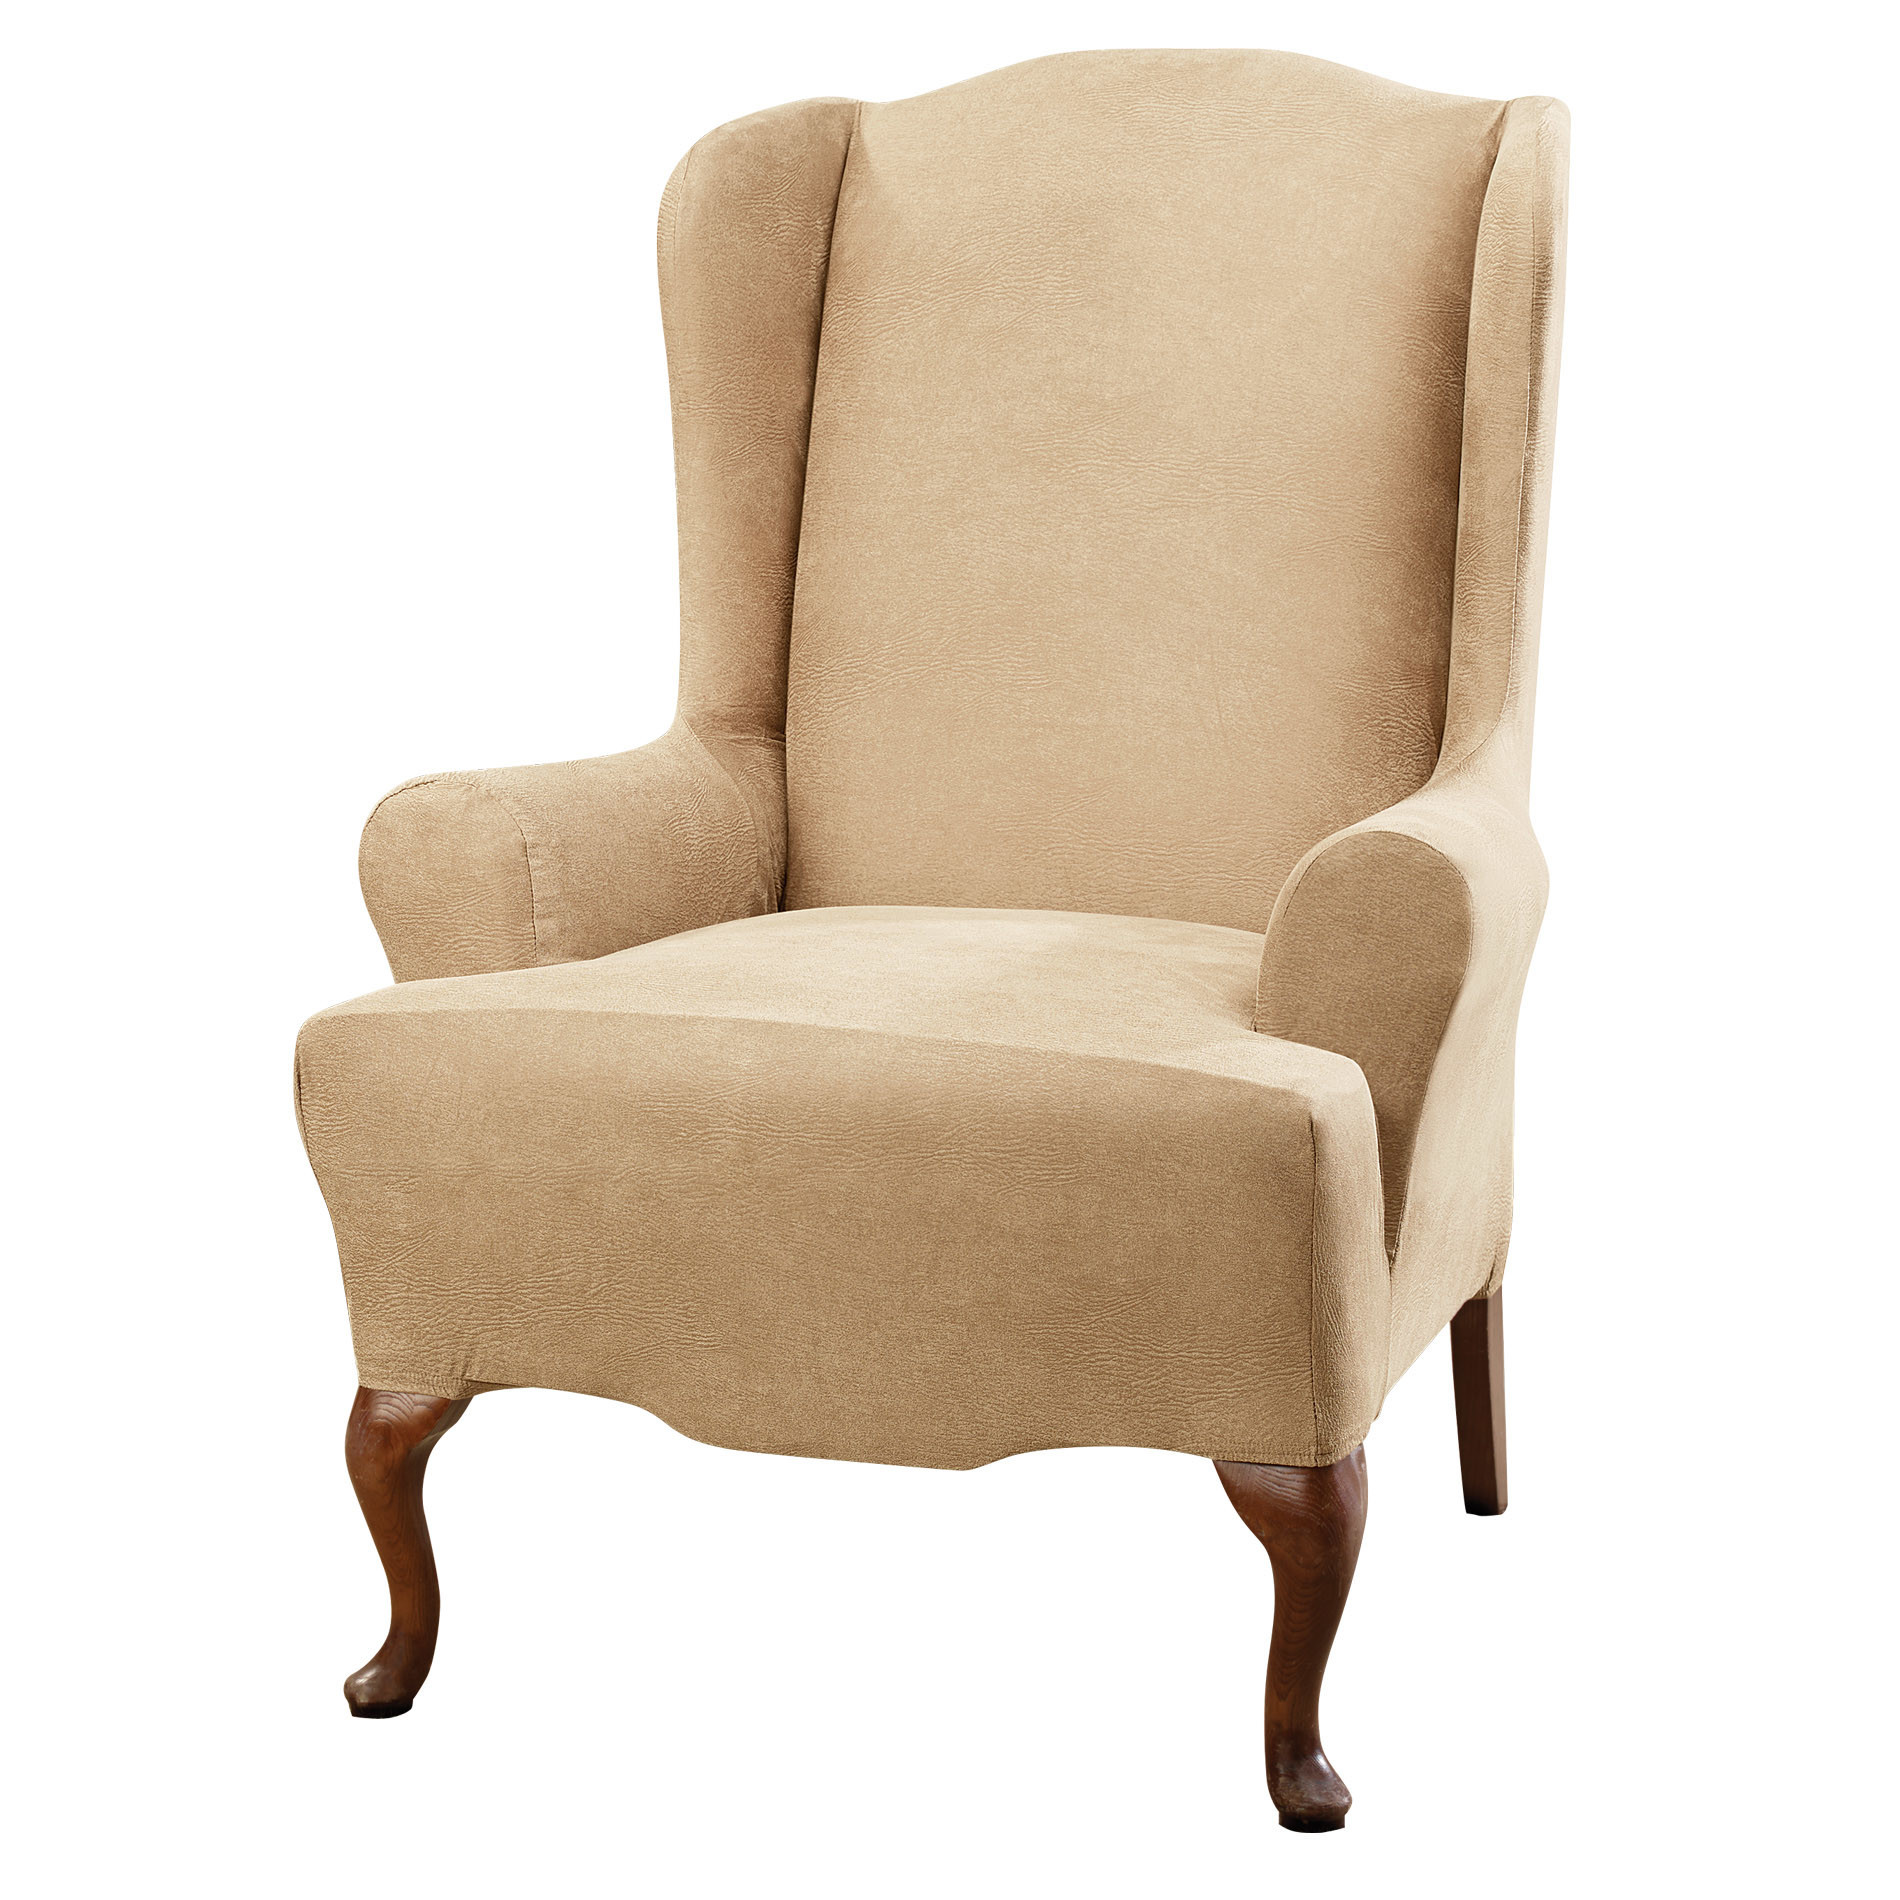 Best ideas about Surefit Chair Cover . Save or Pin Sure Fit Stretch Leather Wing Chair Slipcover & Reviews Now.